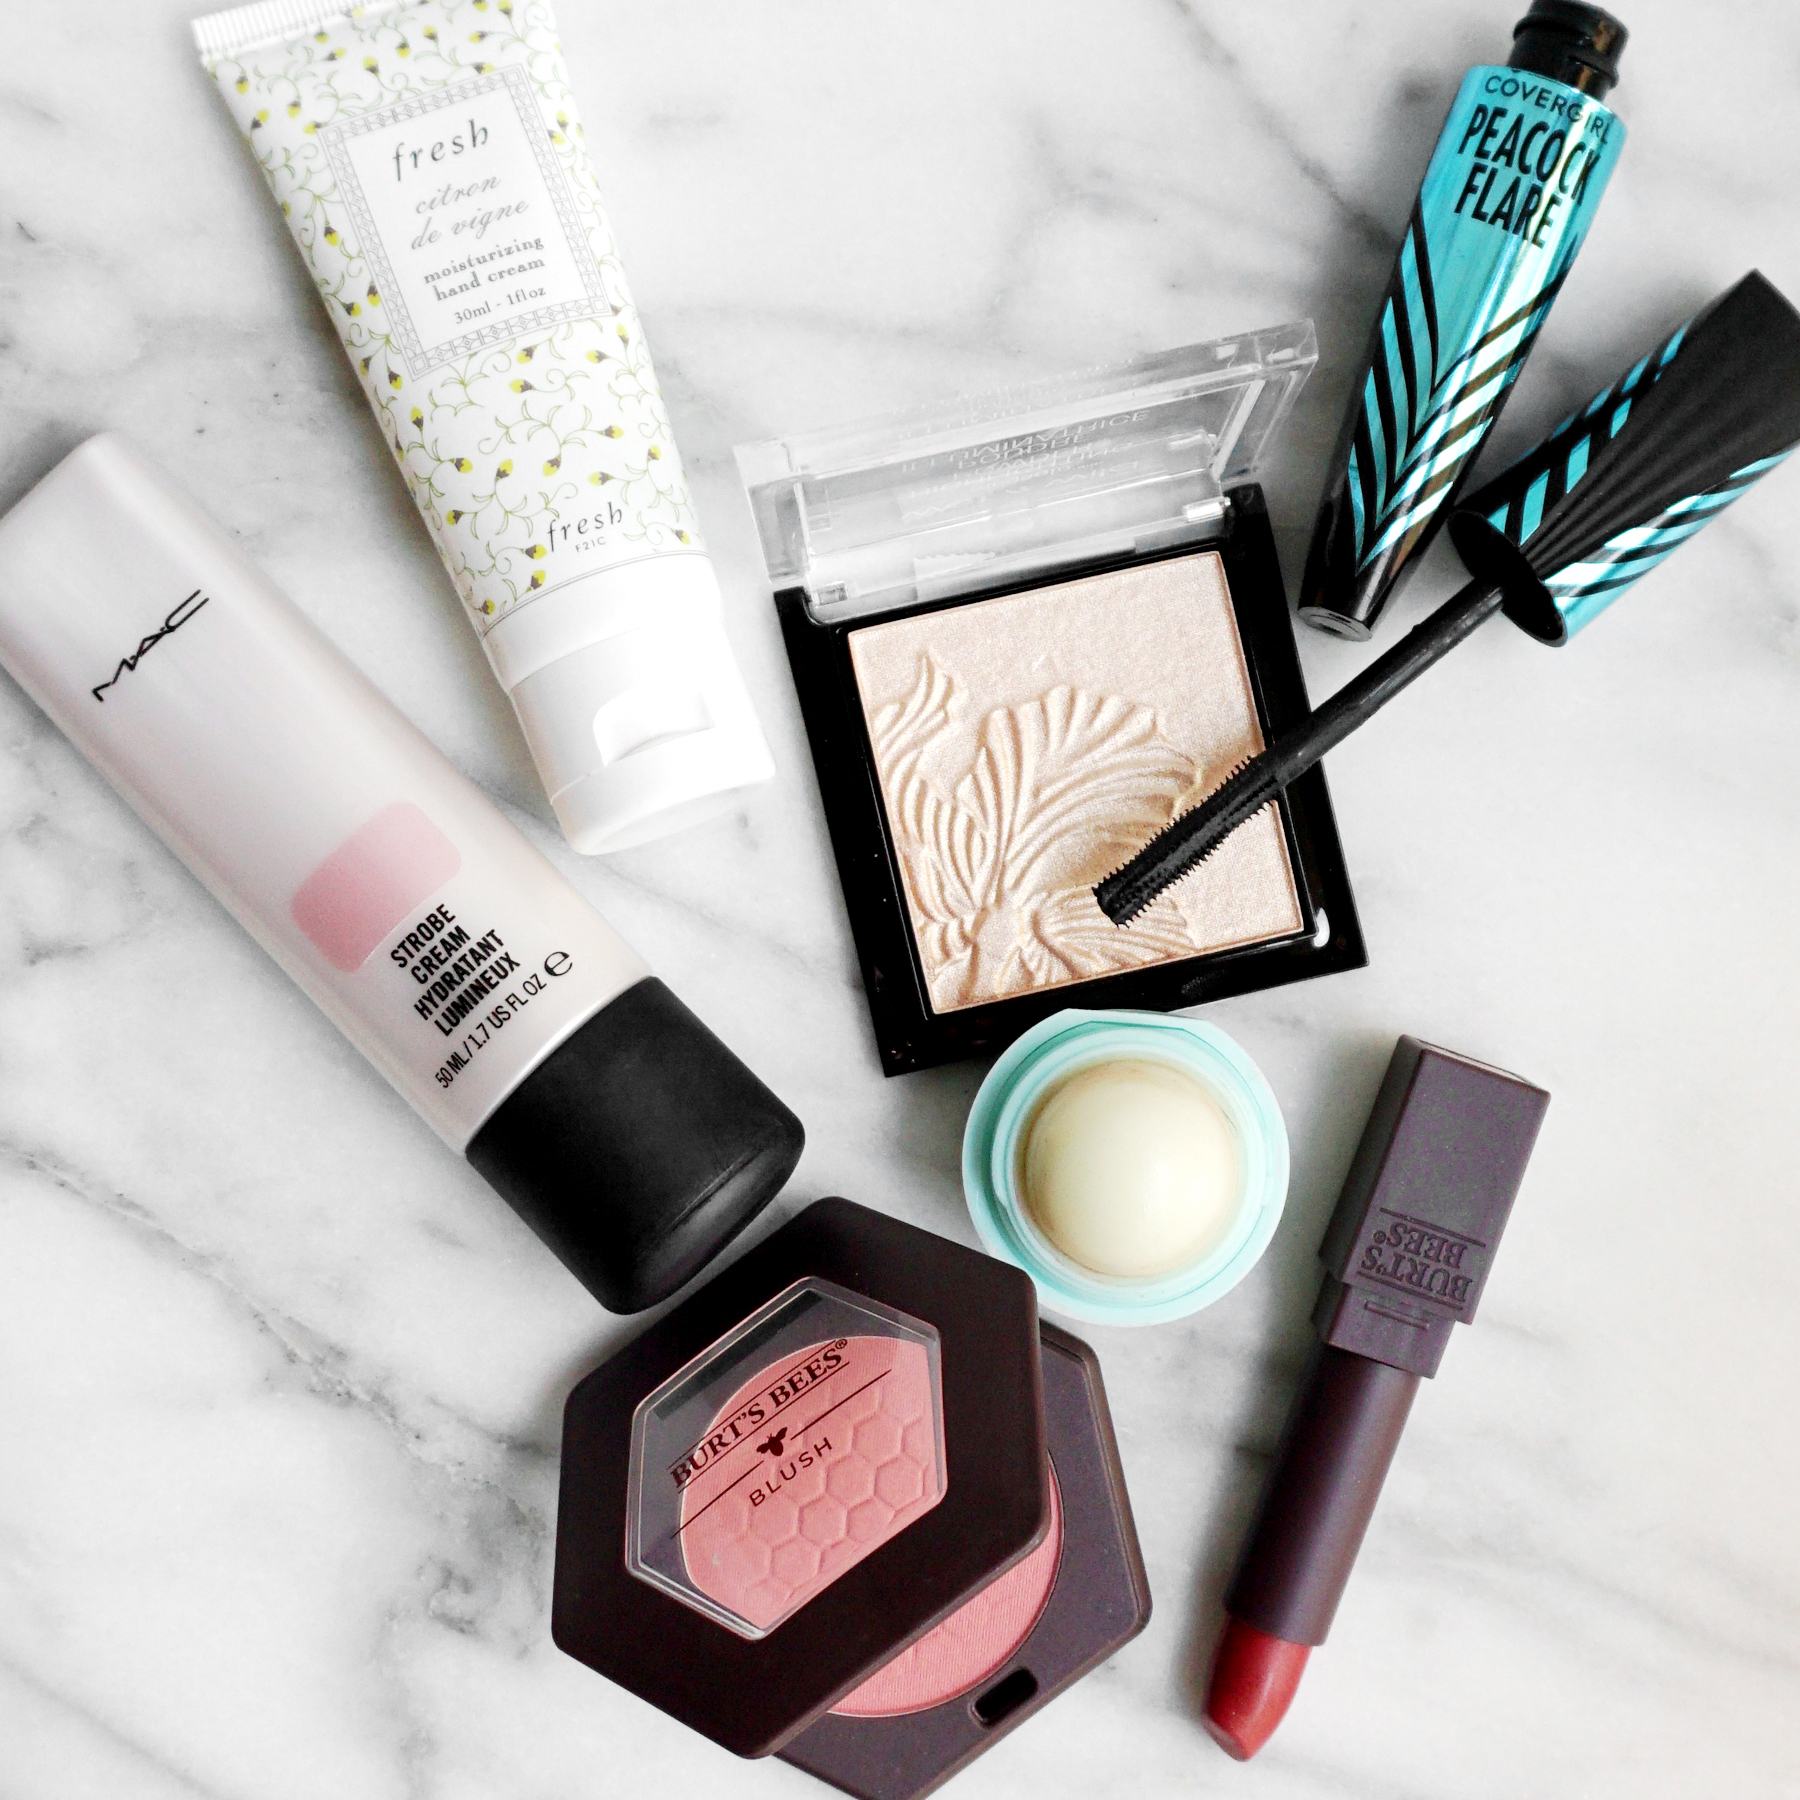 affordable beauty - 20 under $20-187.jpg